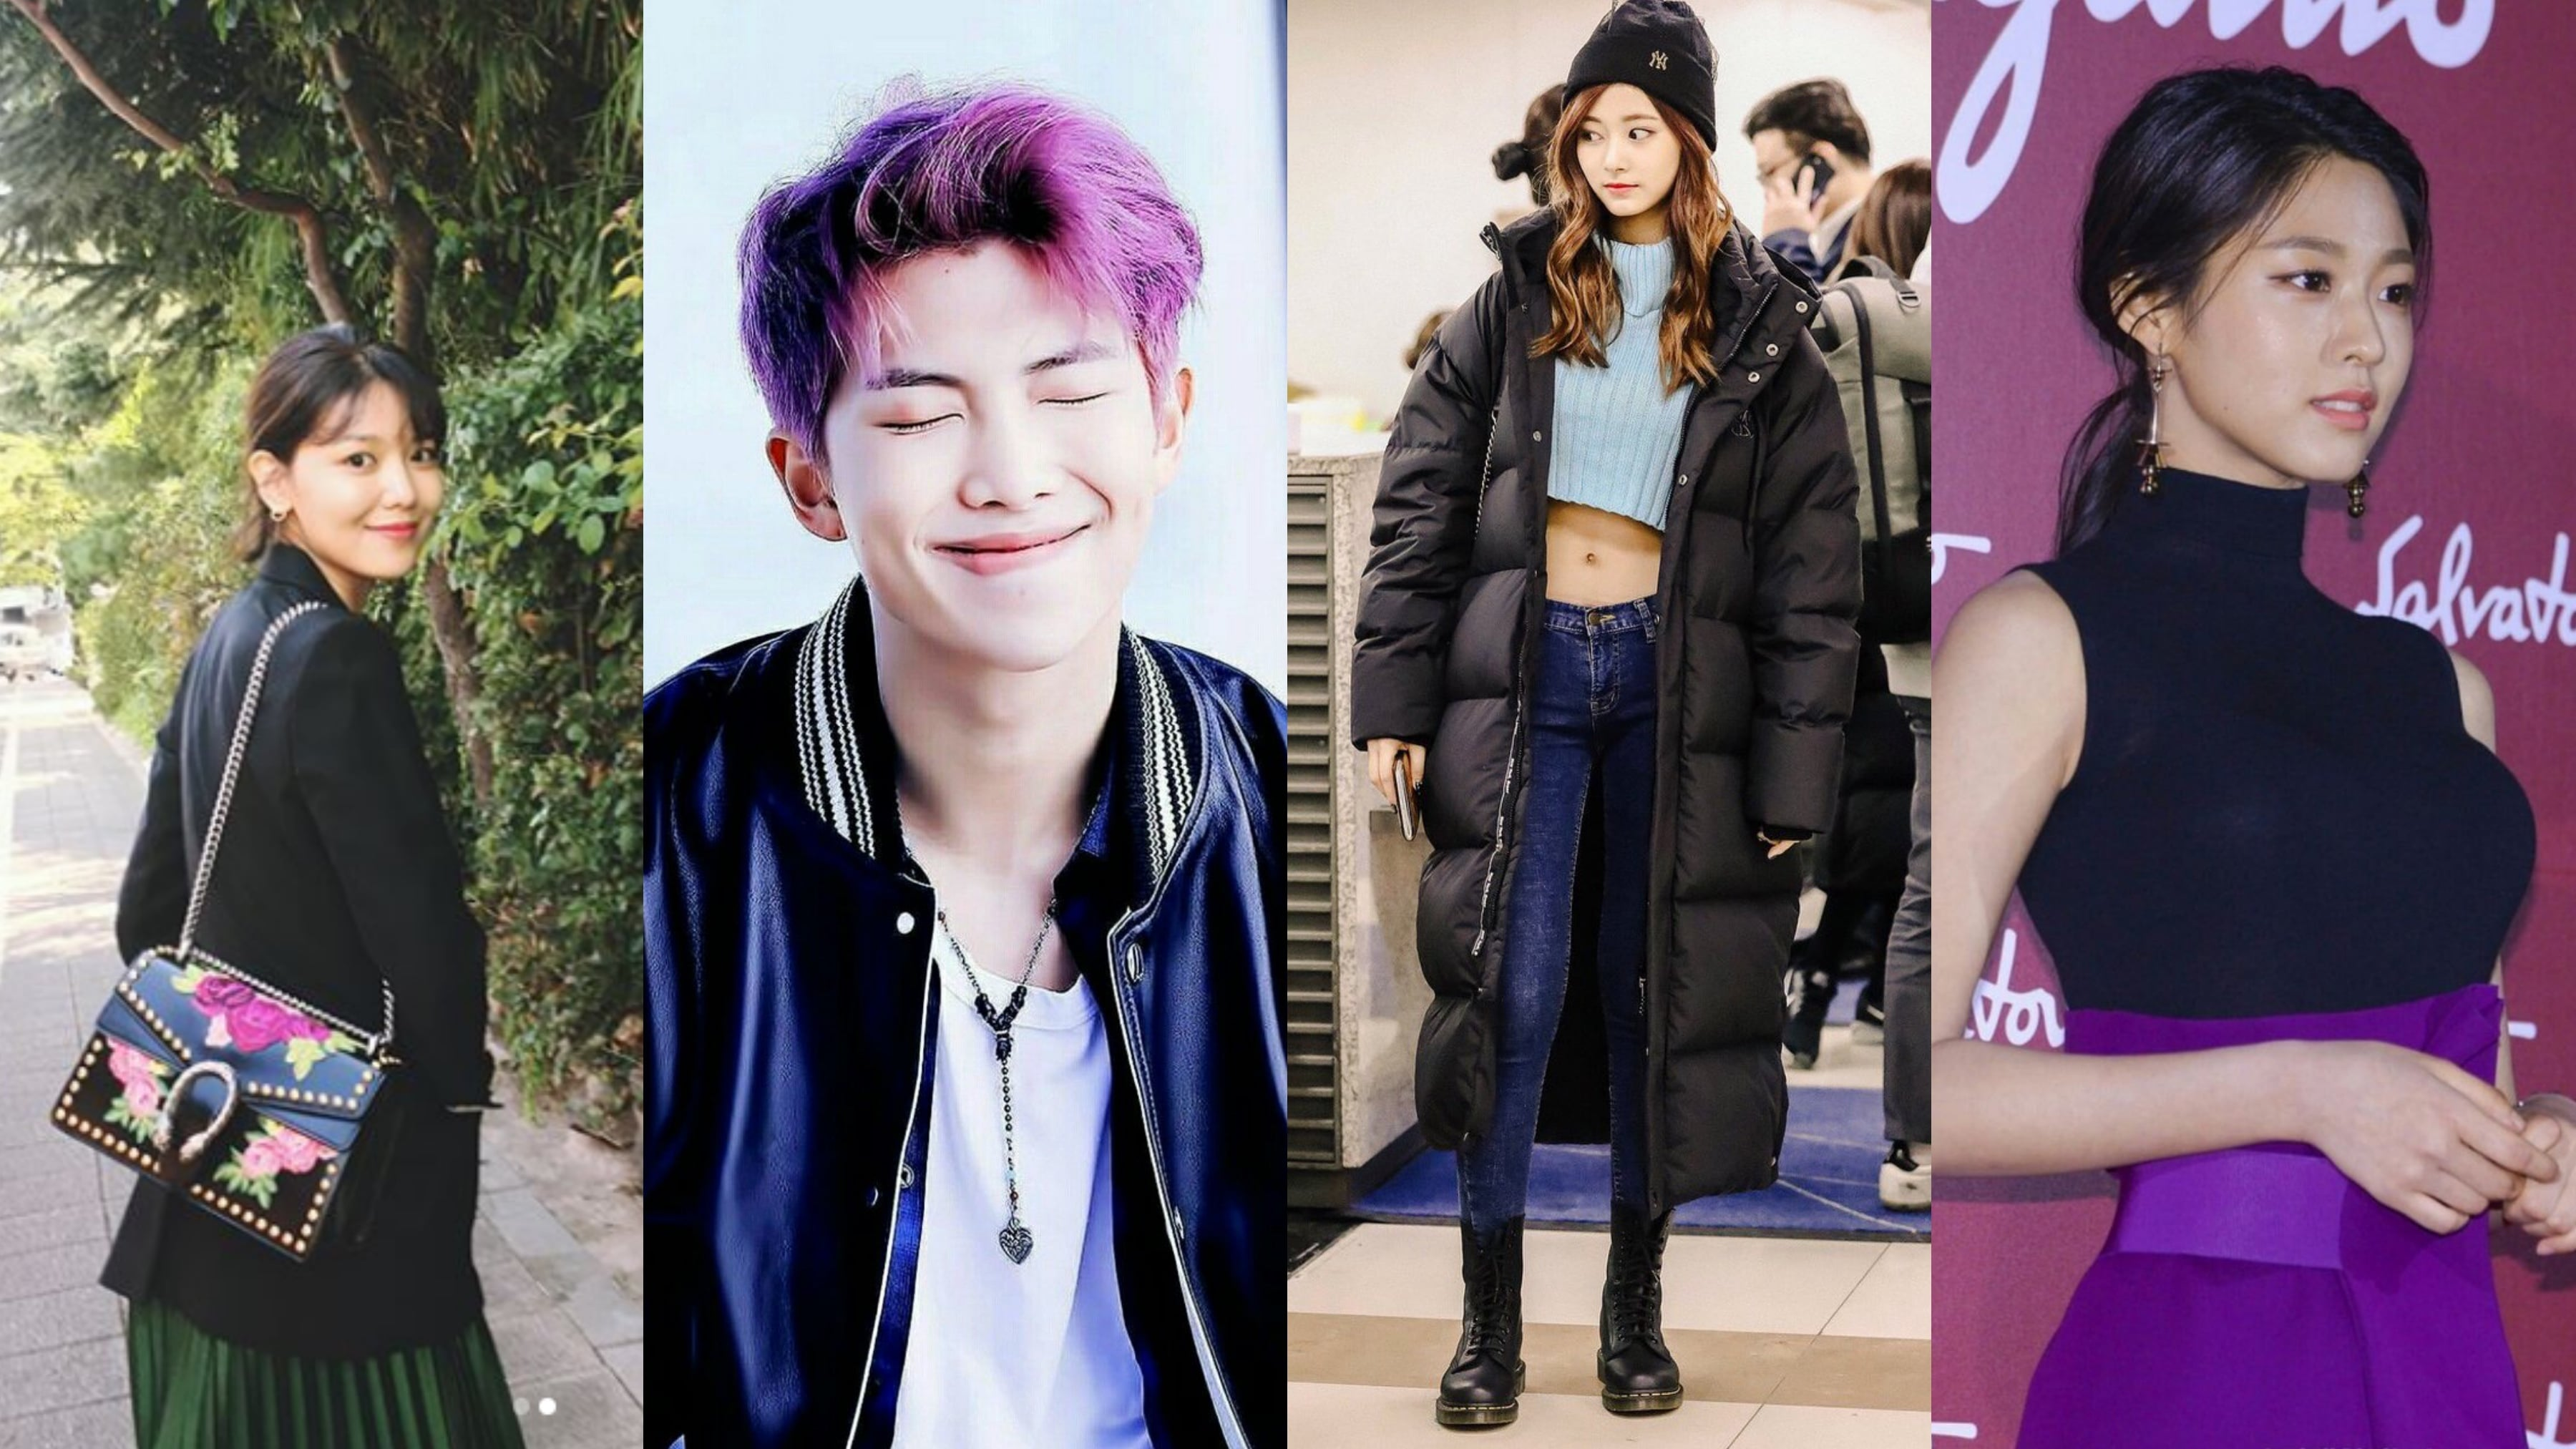 10 Korean Fashion Style Ideas To Refresh Your Look And Wardrobe In